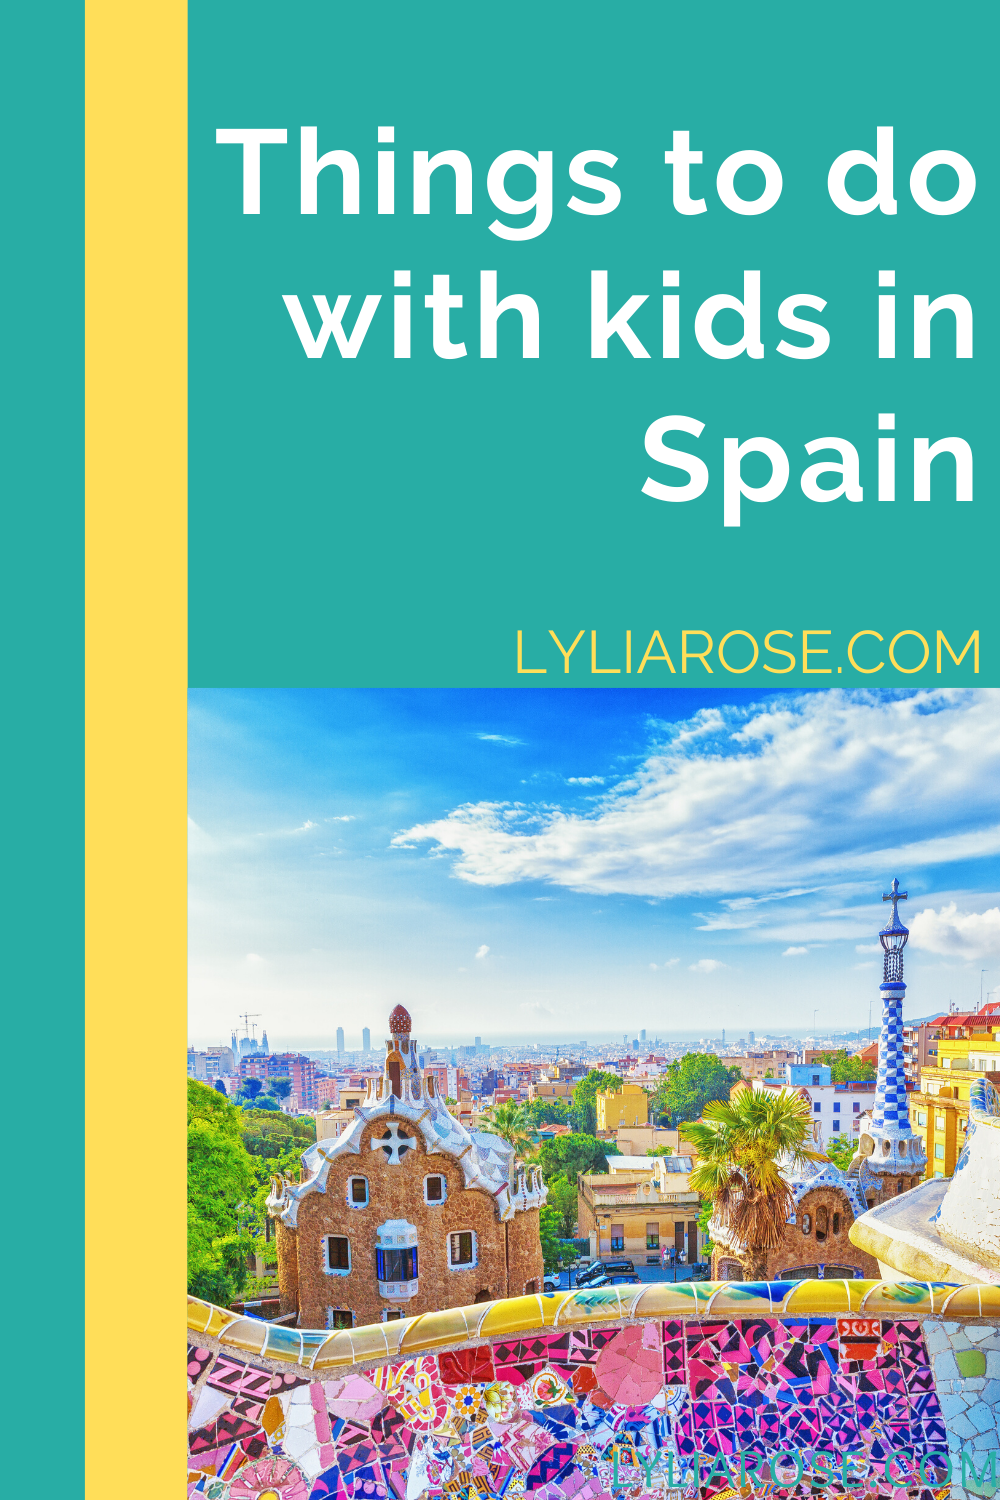 Things to do with kids in Spain